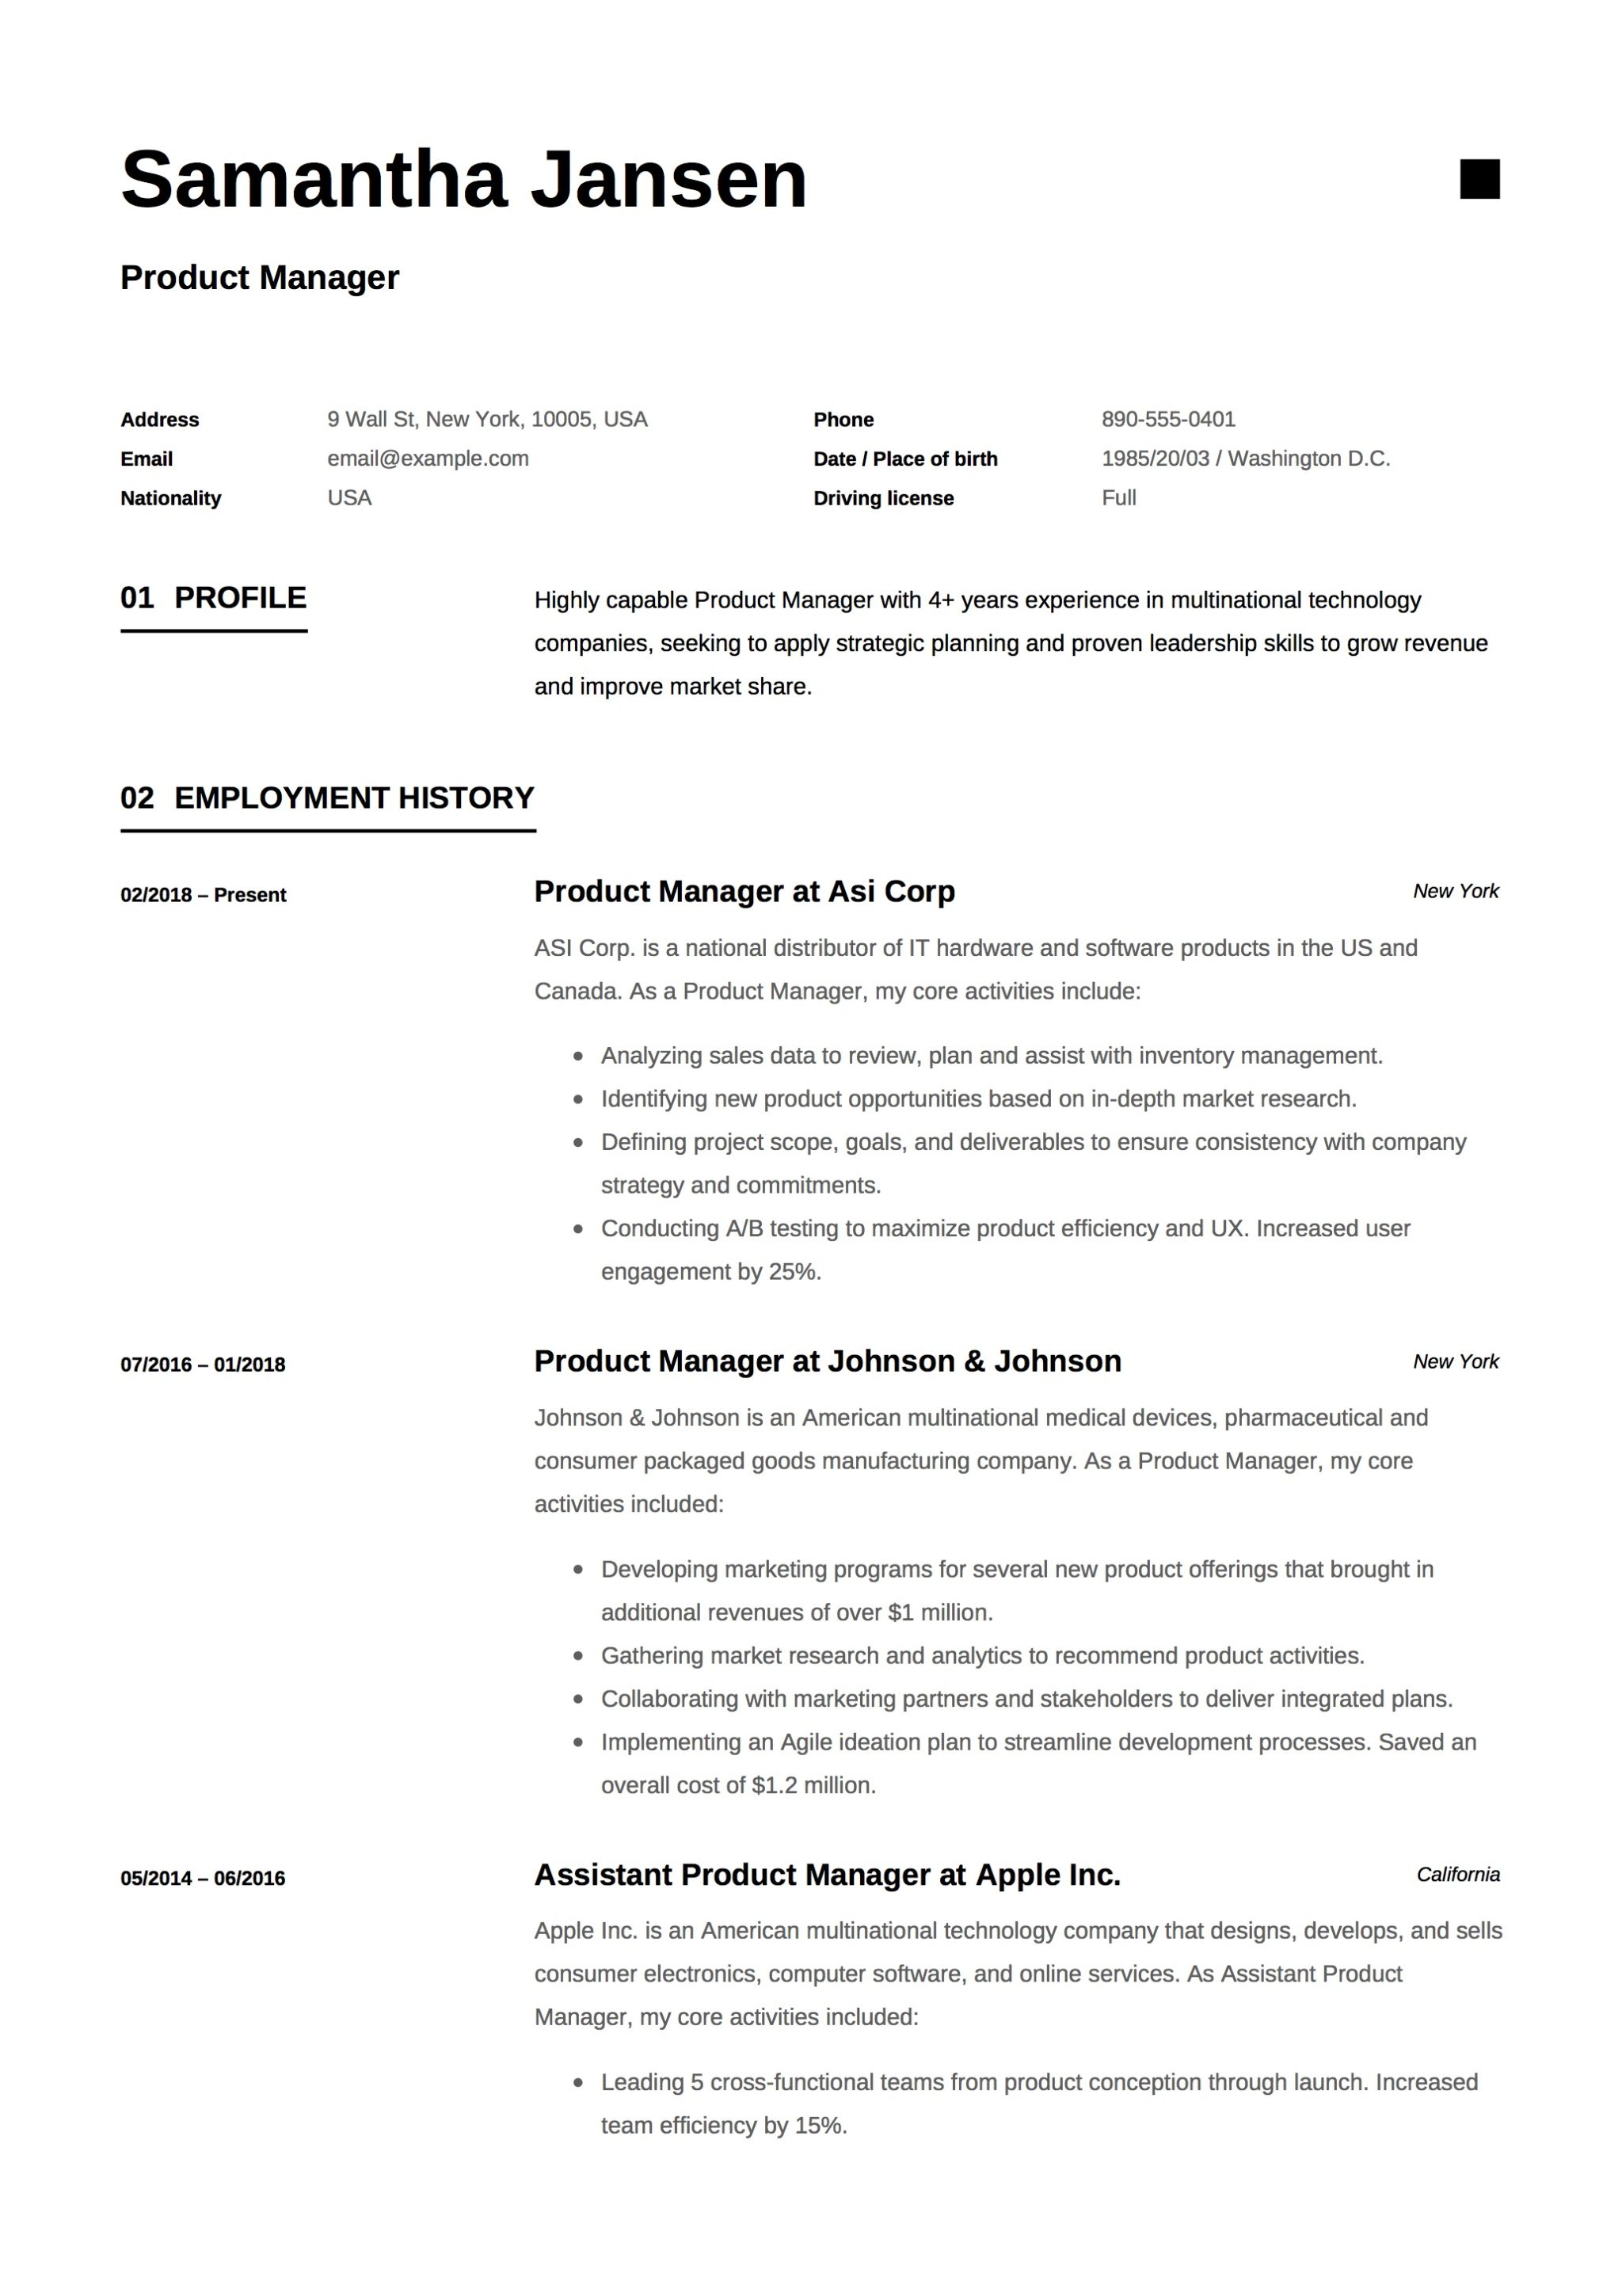 product manager resume sample design - Resume Sample Of Product Manager